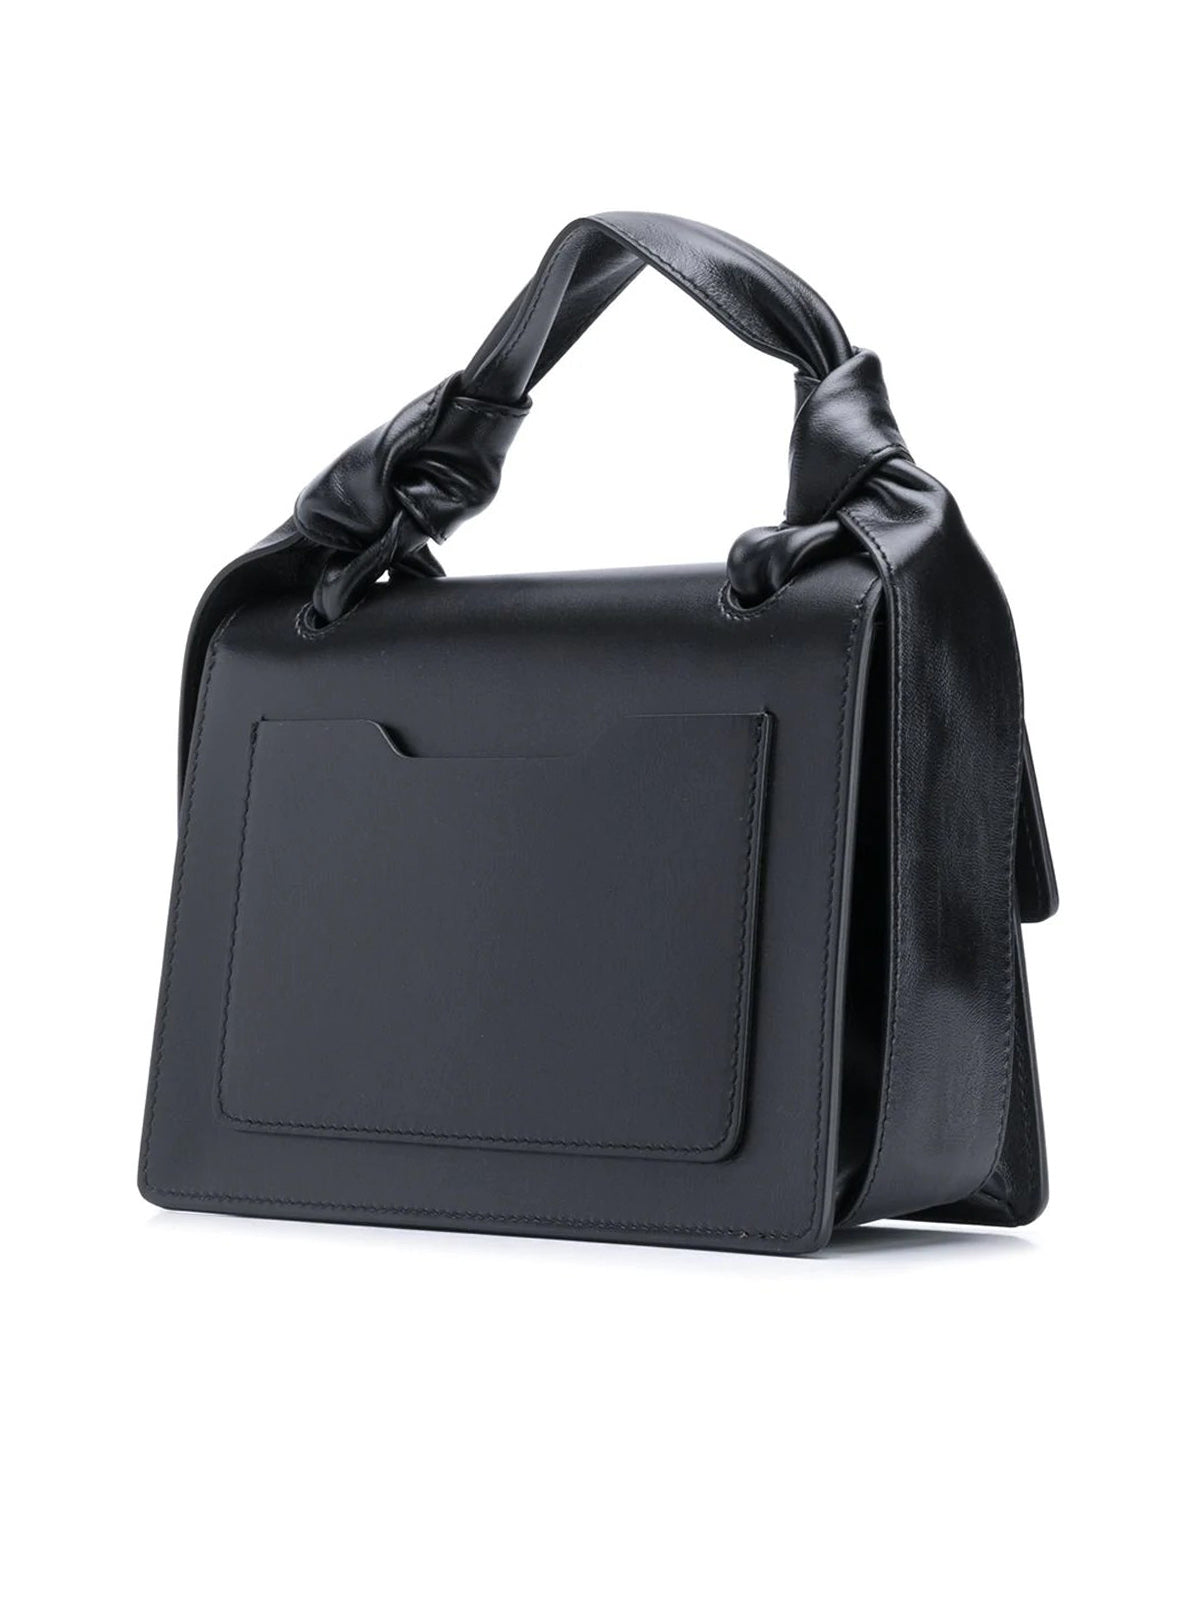 Jitney 1.4 leather crossbody bag